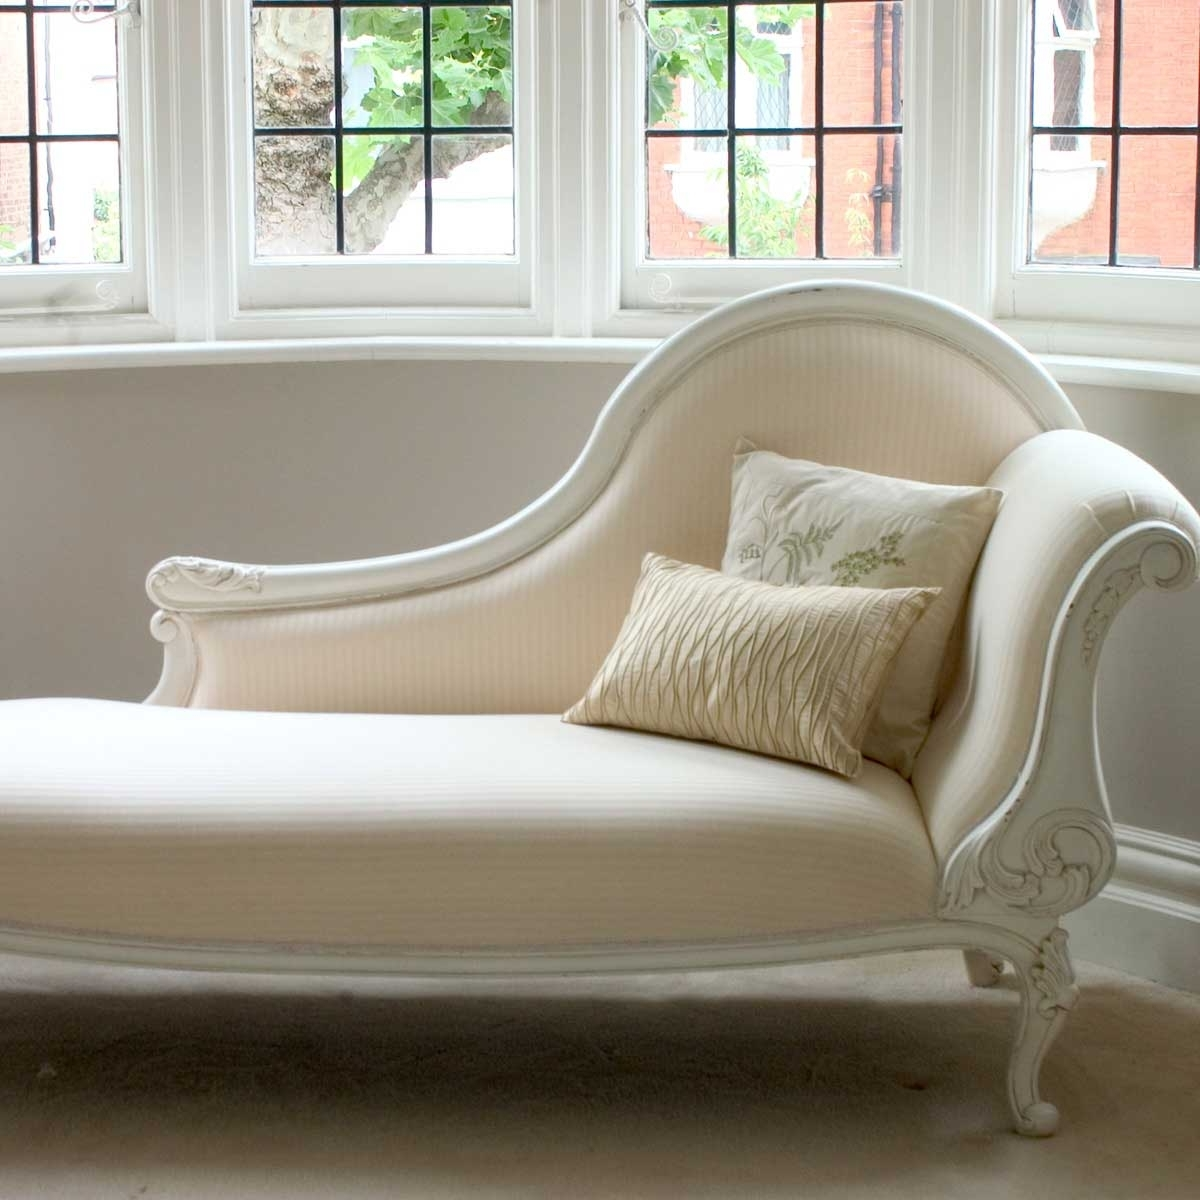 Inexpensive Chaise Lounges inside Best and Newest Tufted Chaise Lounge : Mtc Home Design - How To Make Bedroom